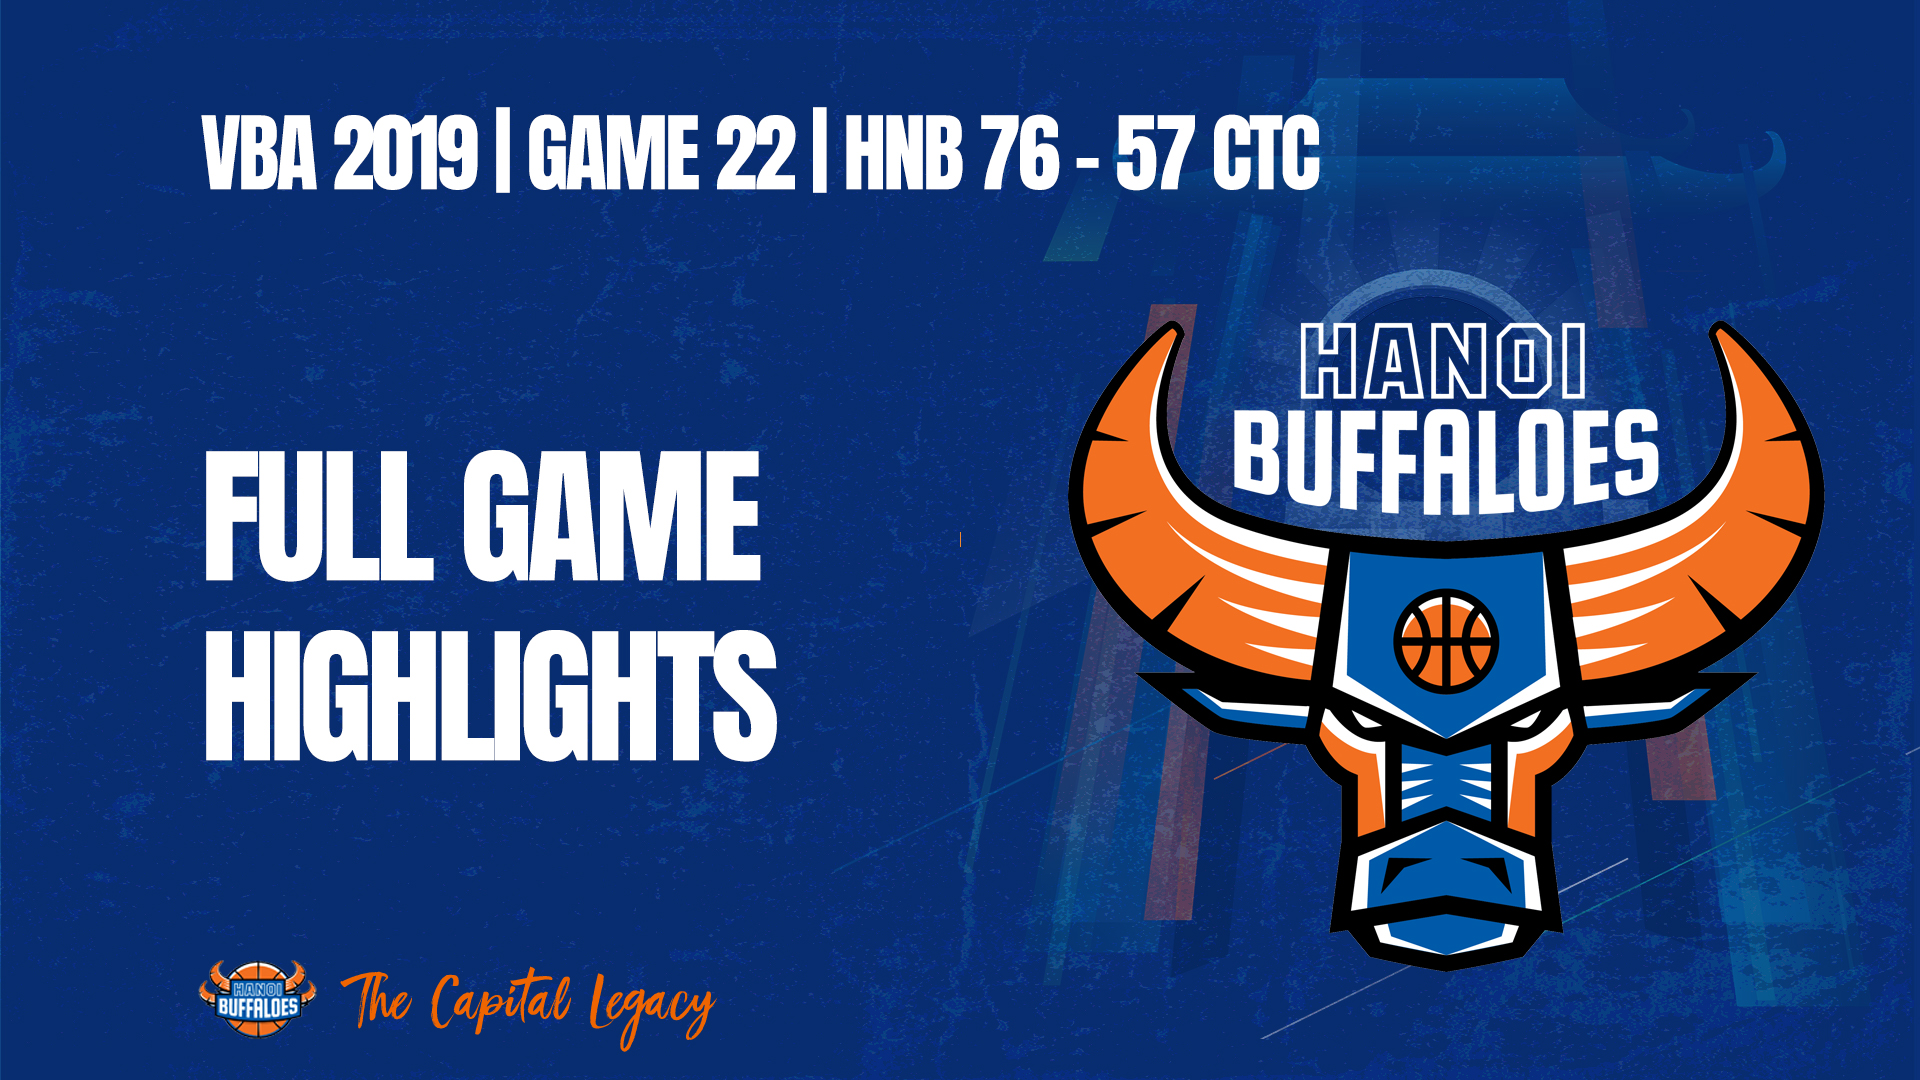 VBA 2019 | GAME 22 | HNB – DND | FULL GAME HIGHLIGHTS